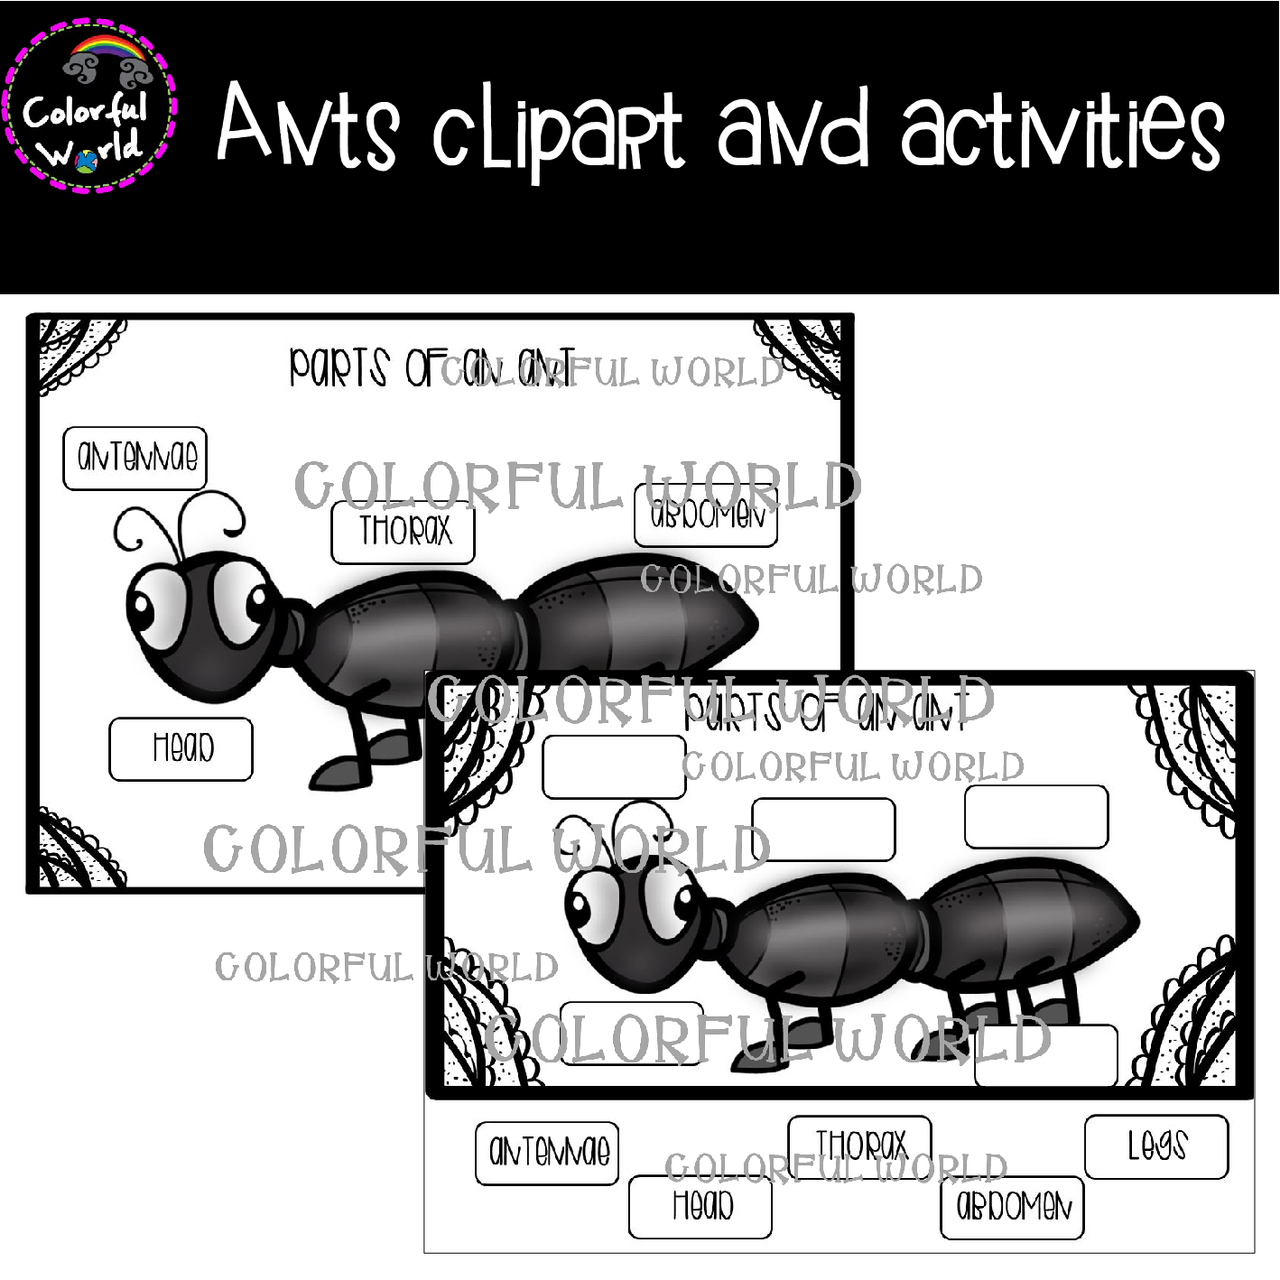 Ants clipart and activities